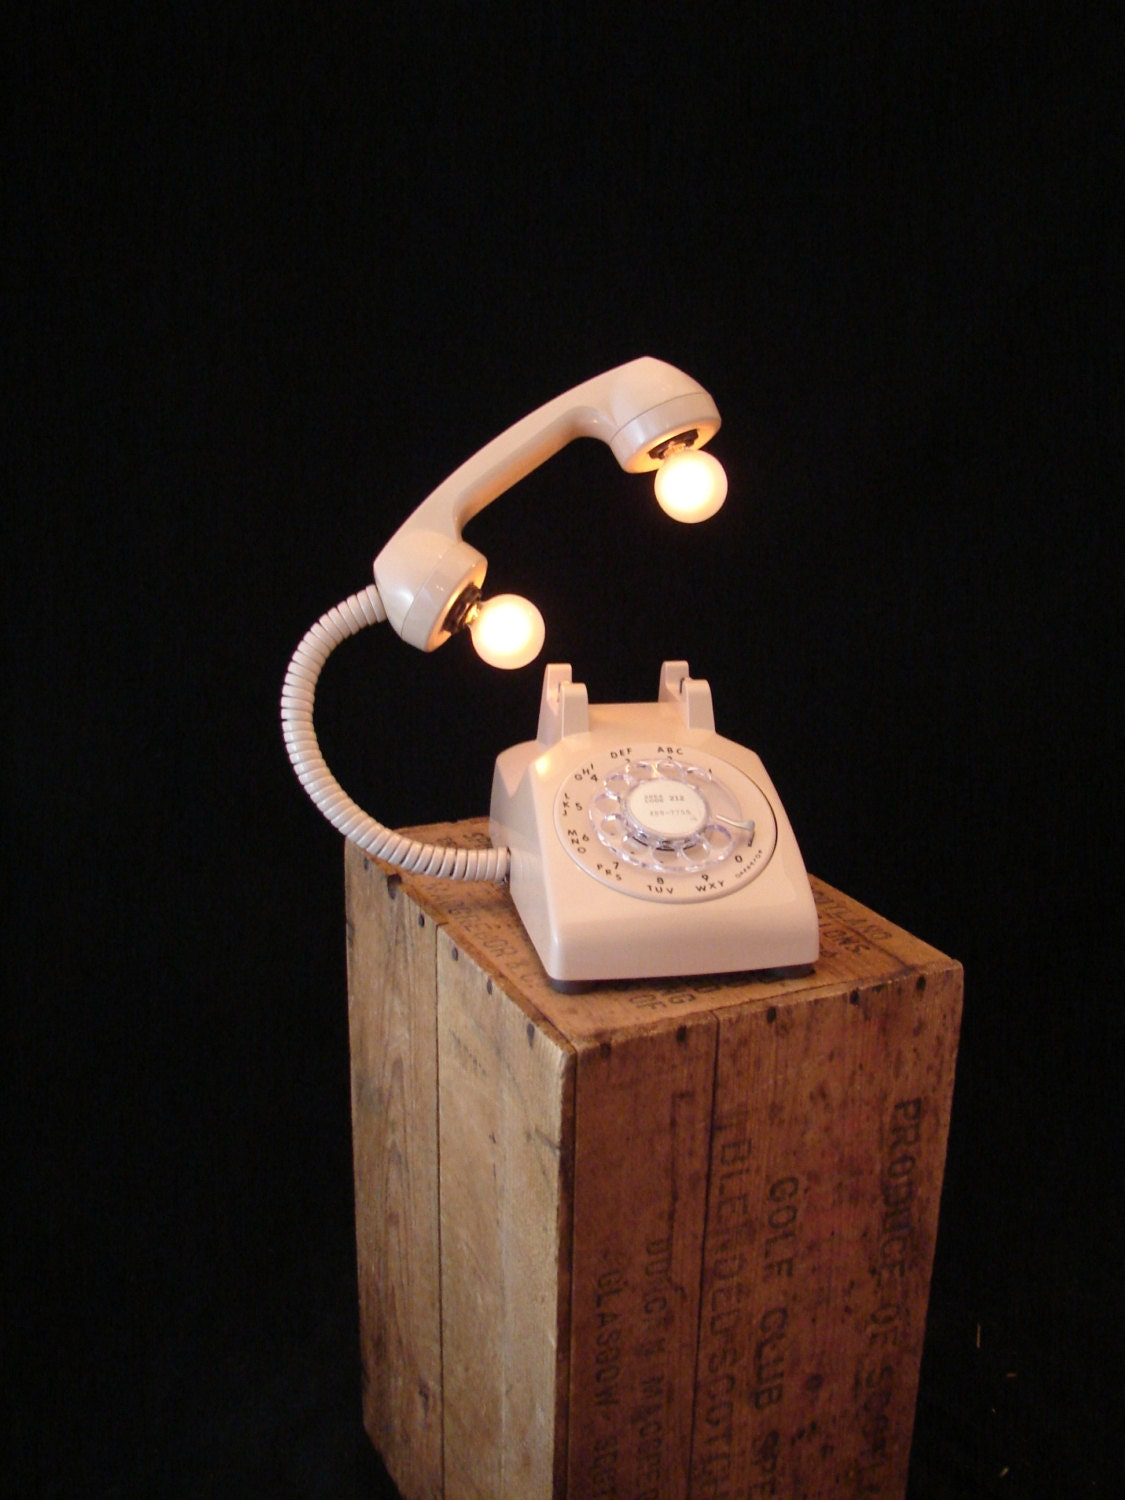 Upcycled Vintage Beige Rotary Telephone Lamp